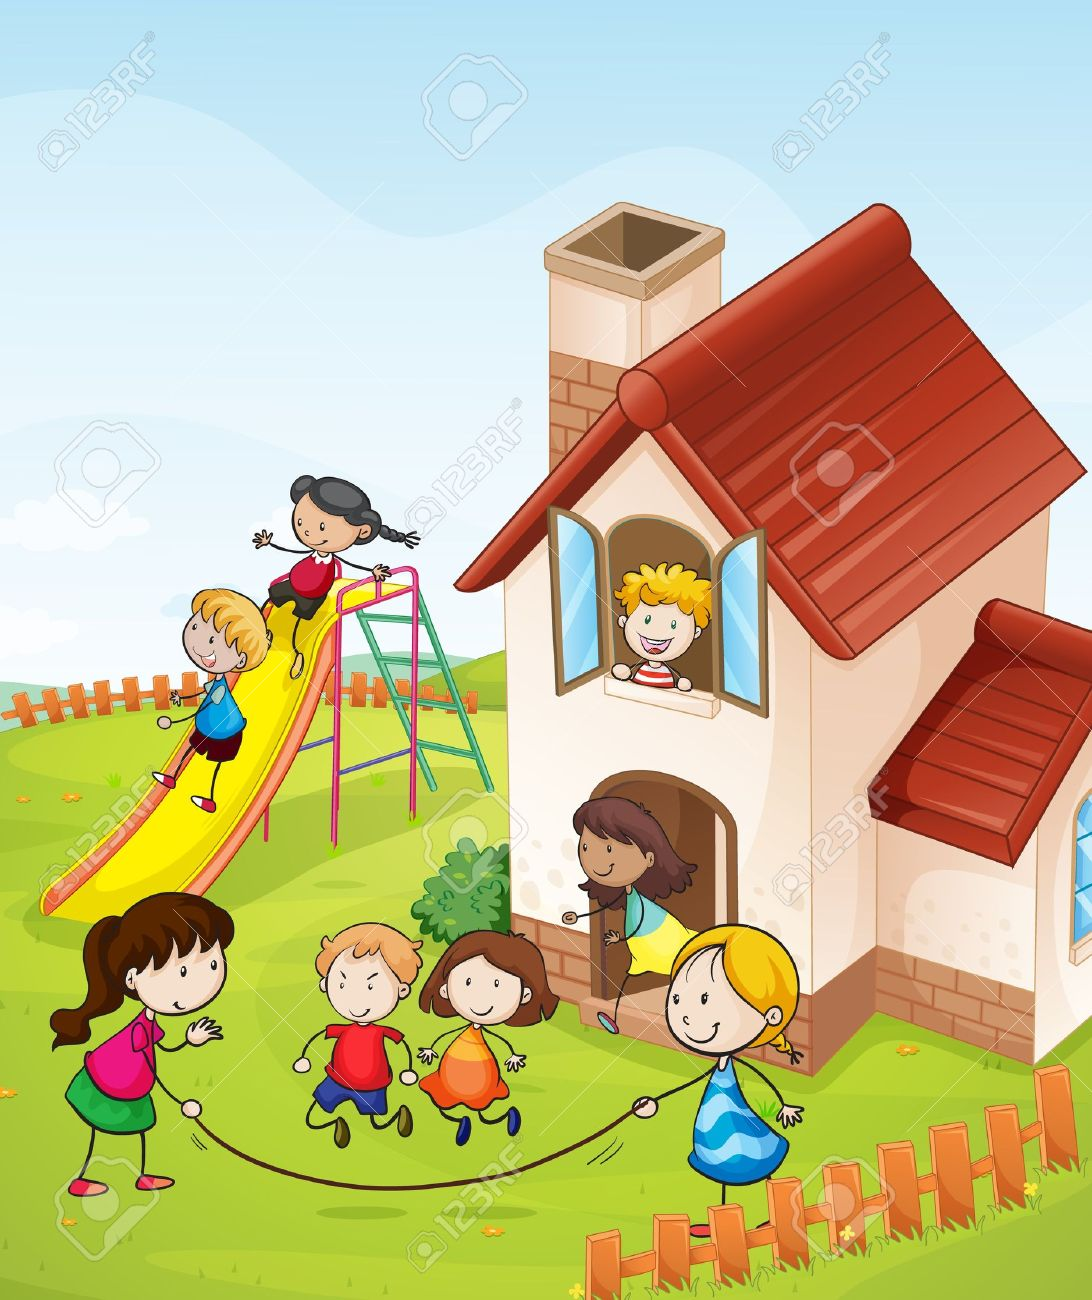 illustration of kids and a house in a beautiful nature Stock Vector - 16188285